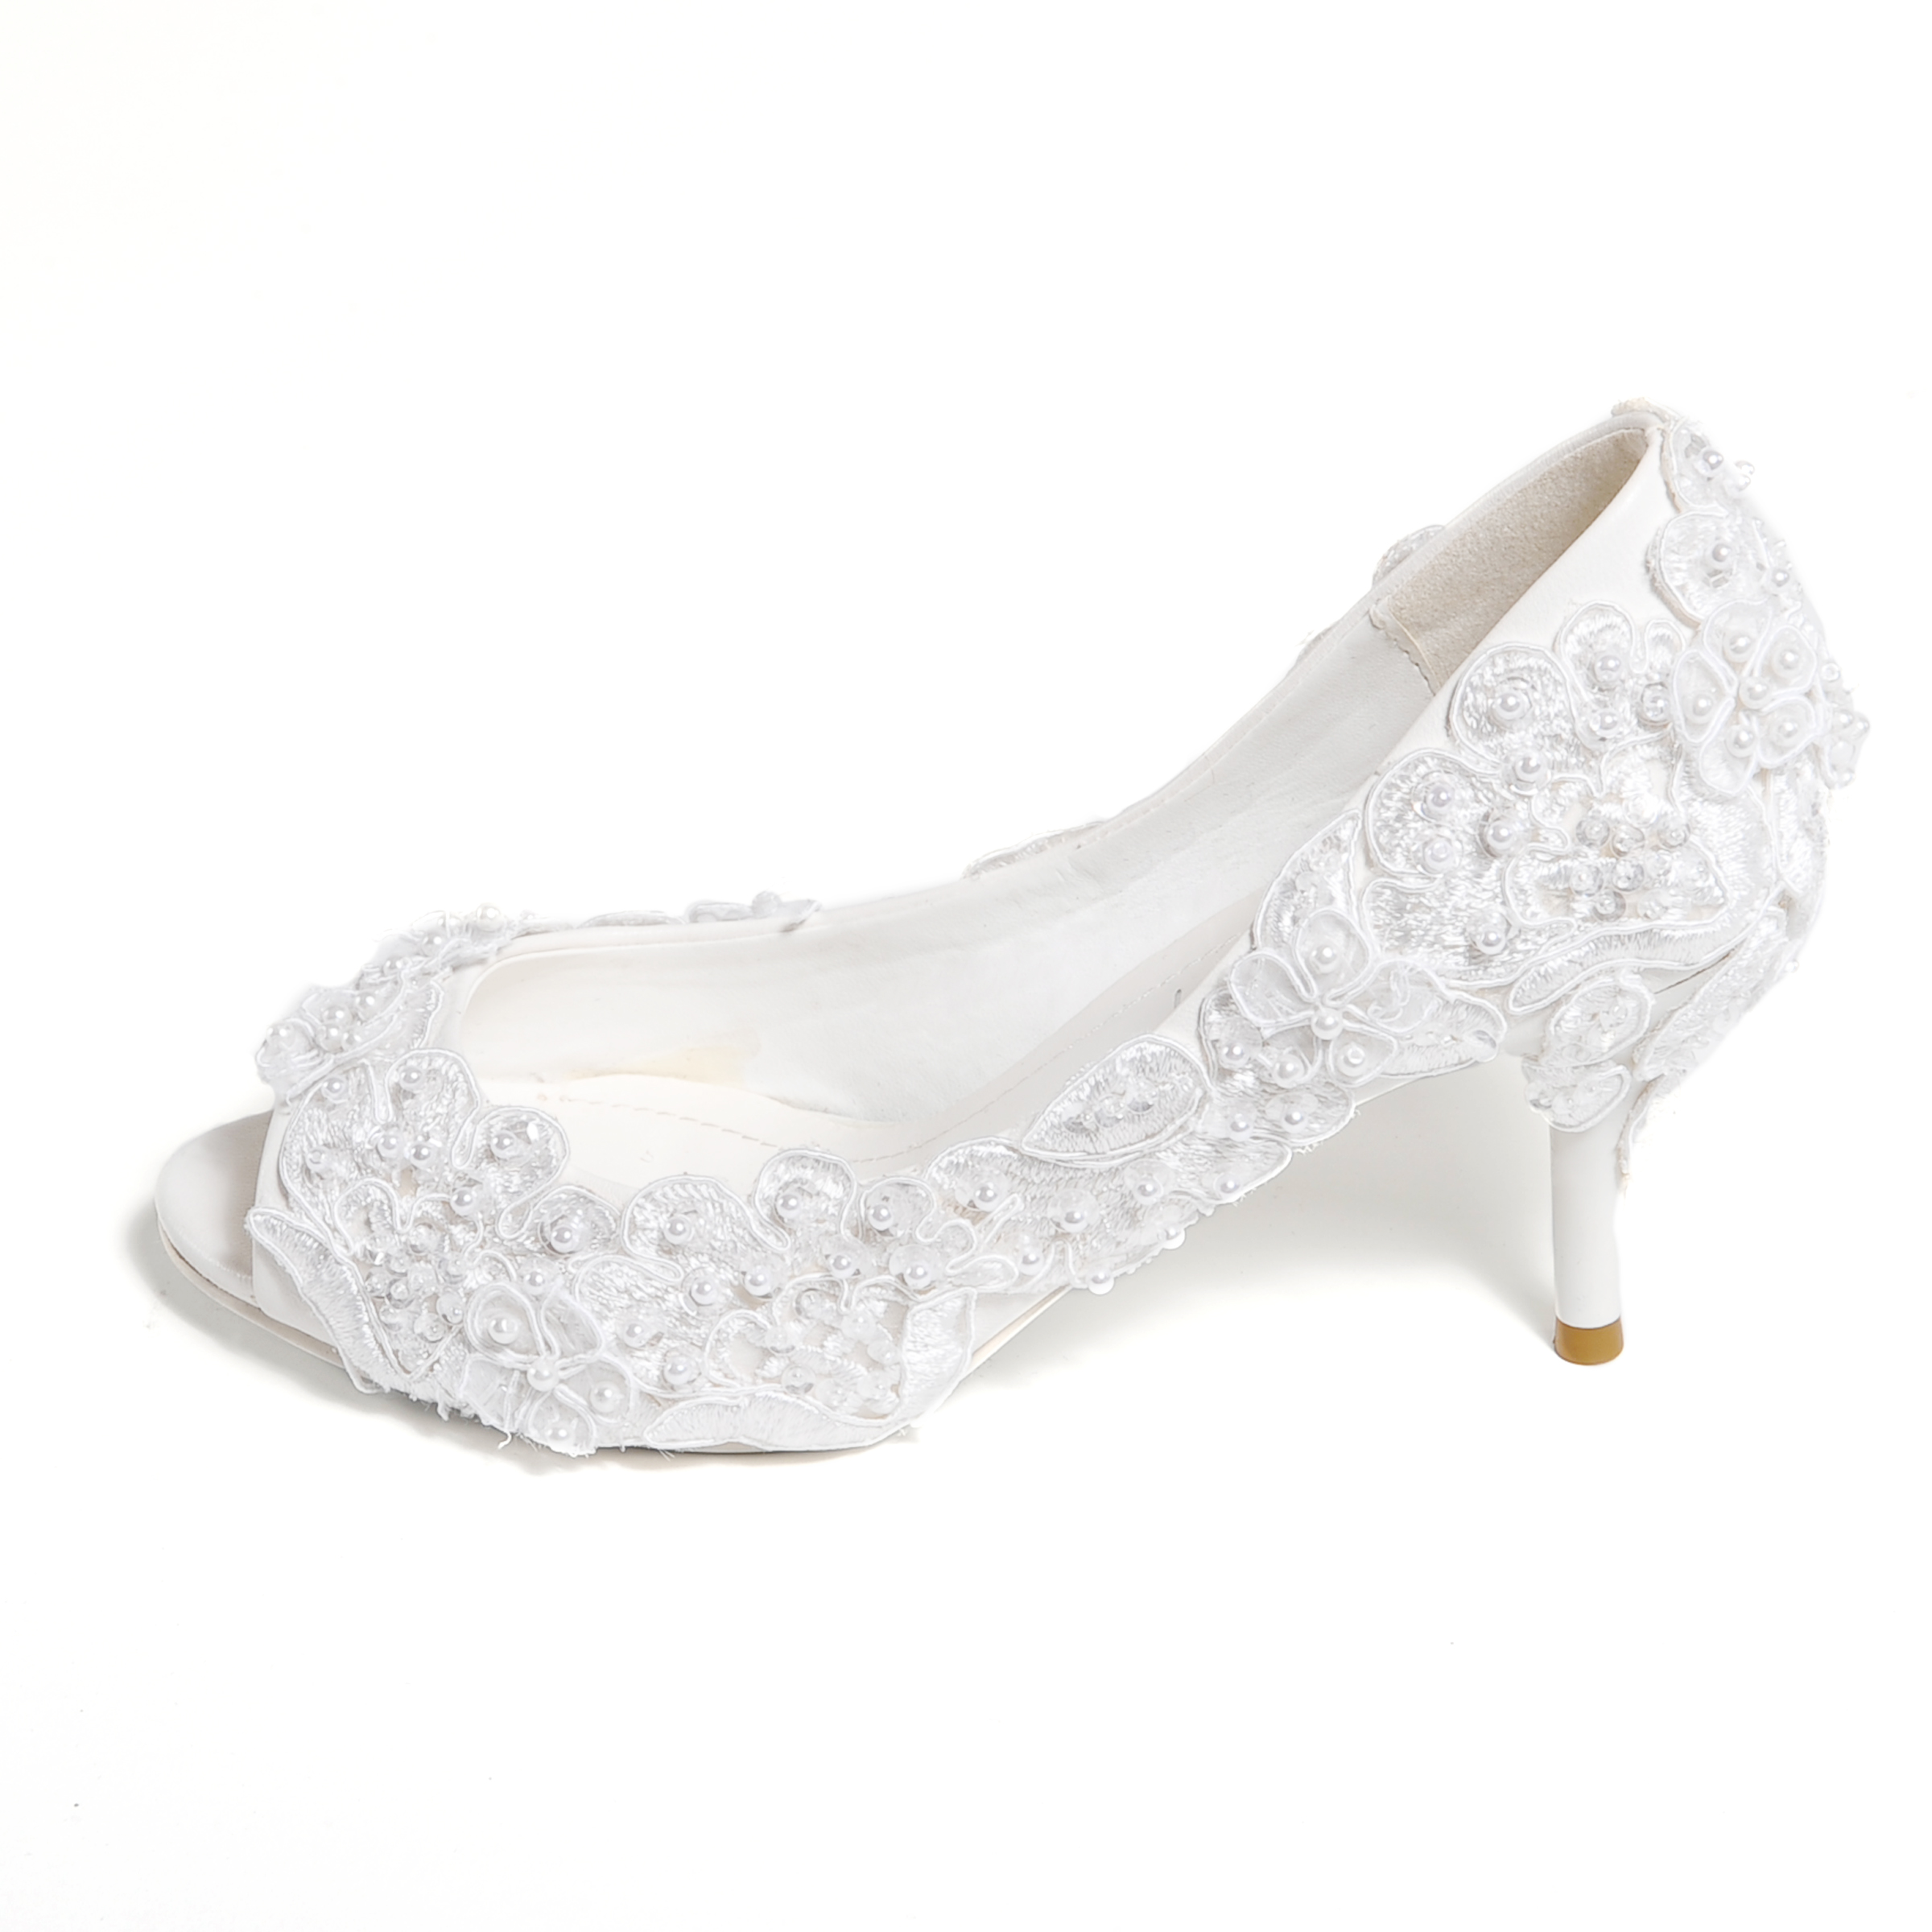 White Shoes Low Heel QiV46TXM